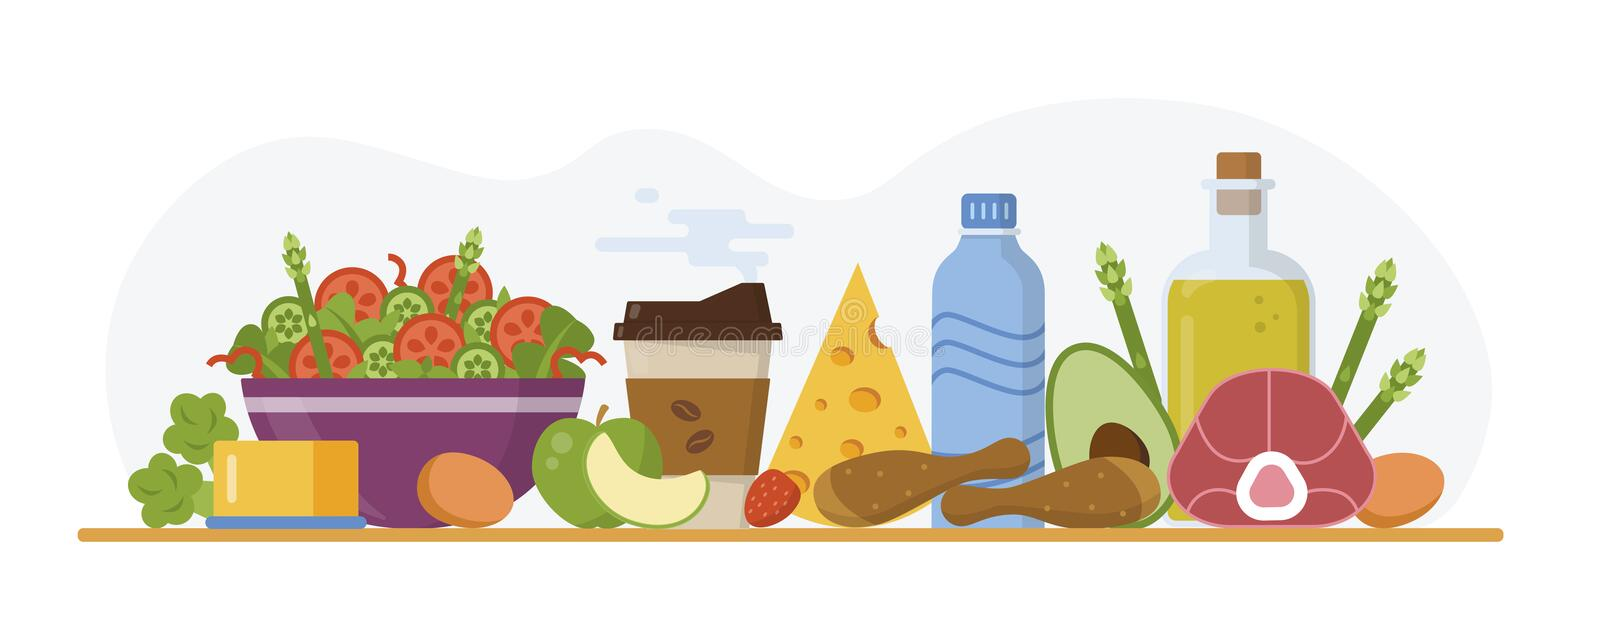 Keto diet concept. Ketogenic food and drinks on the table. Flat design. Vector illustration vector illustration